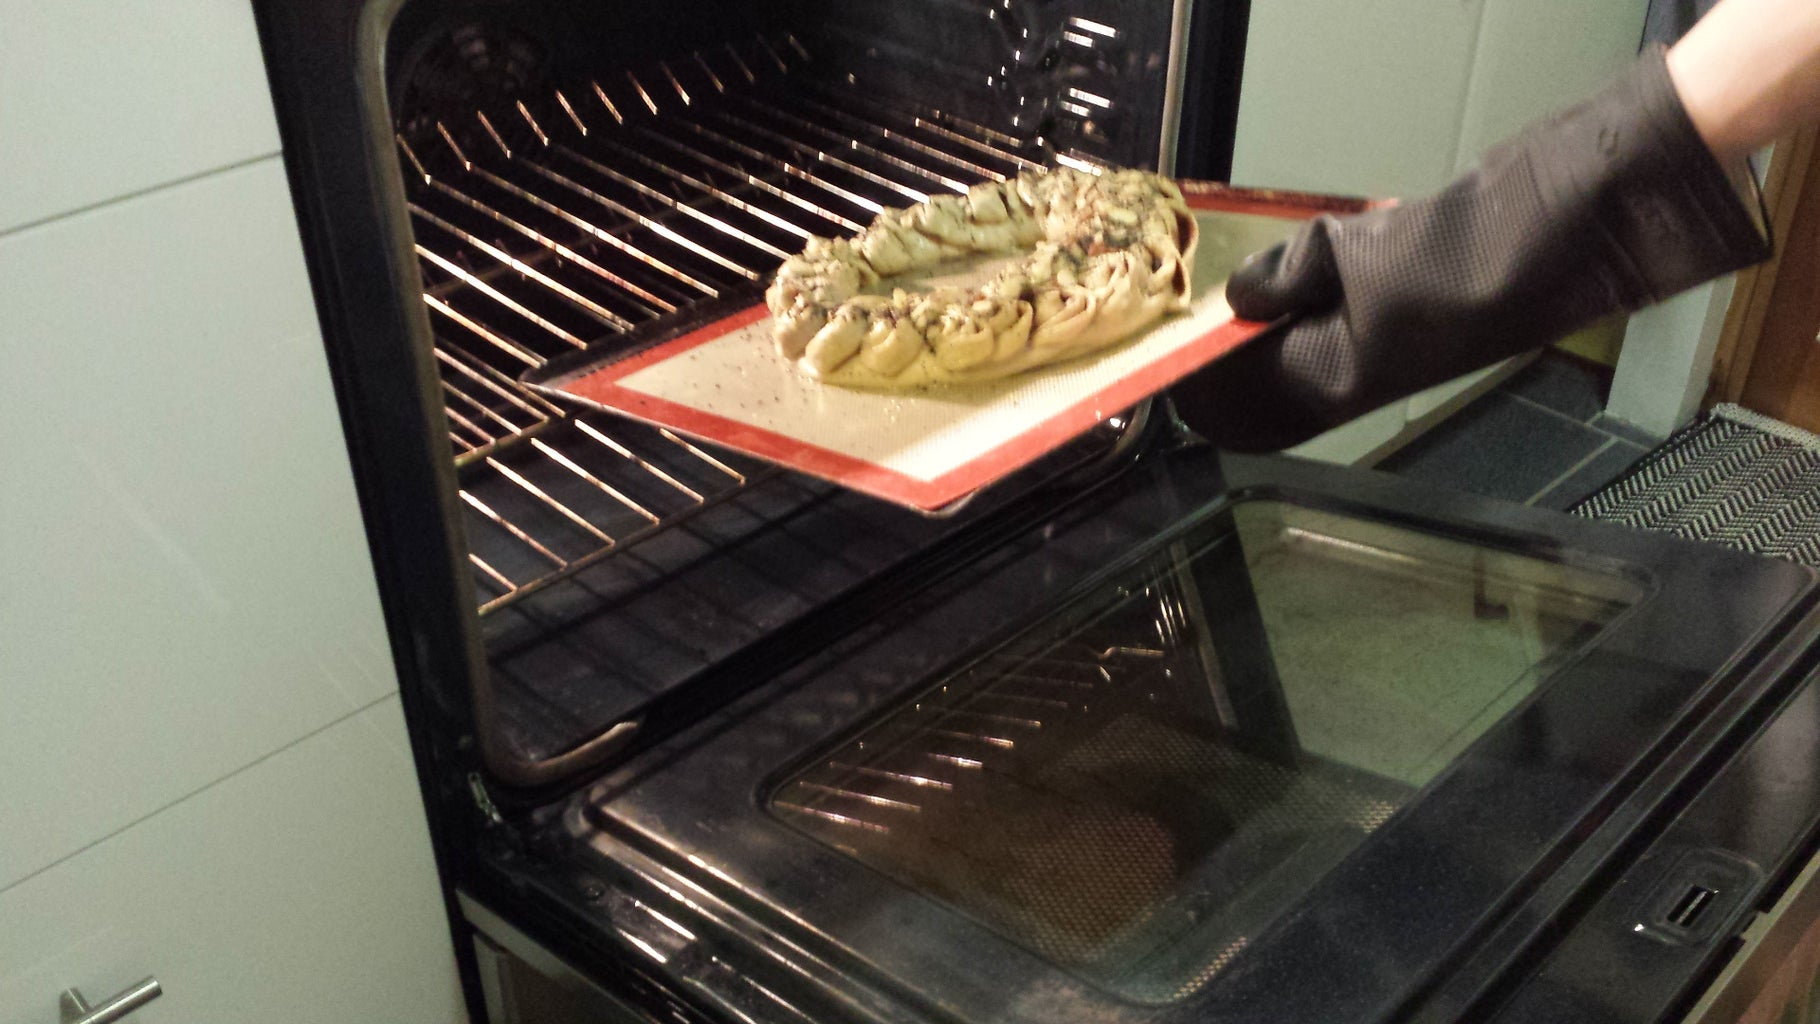 Bake It in the Oven